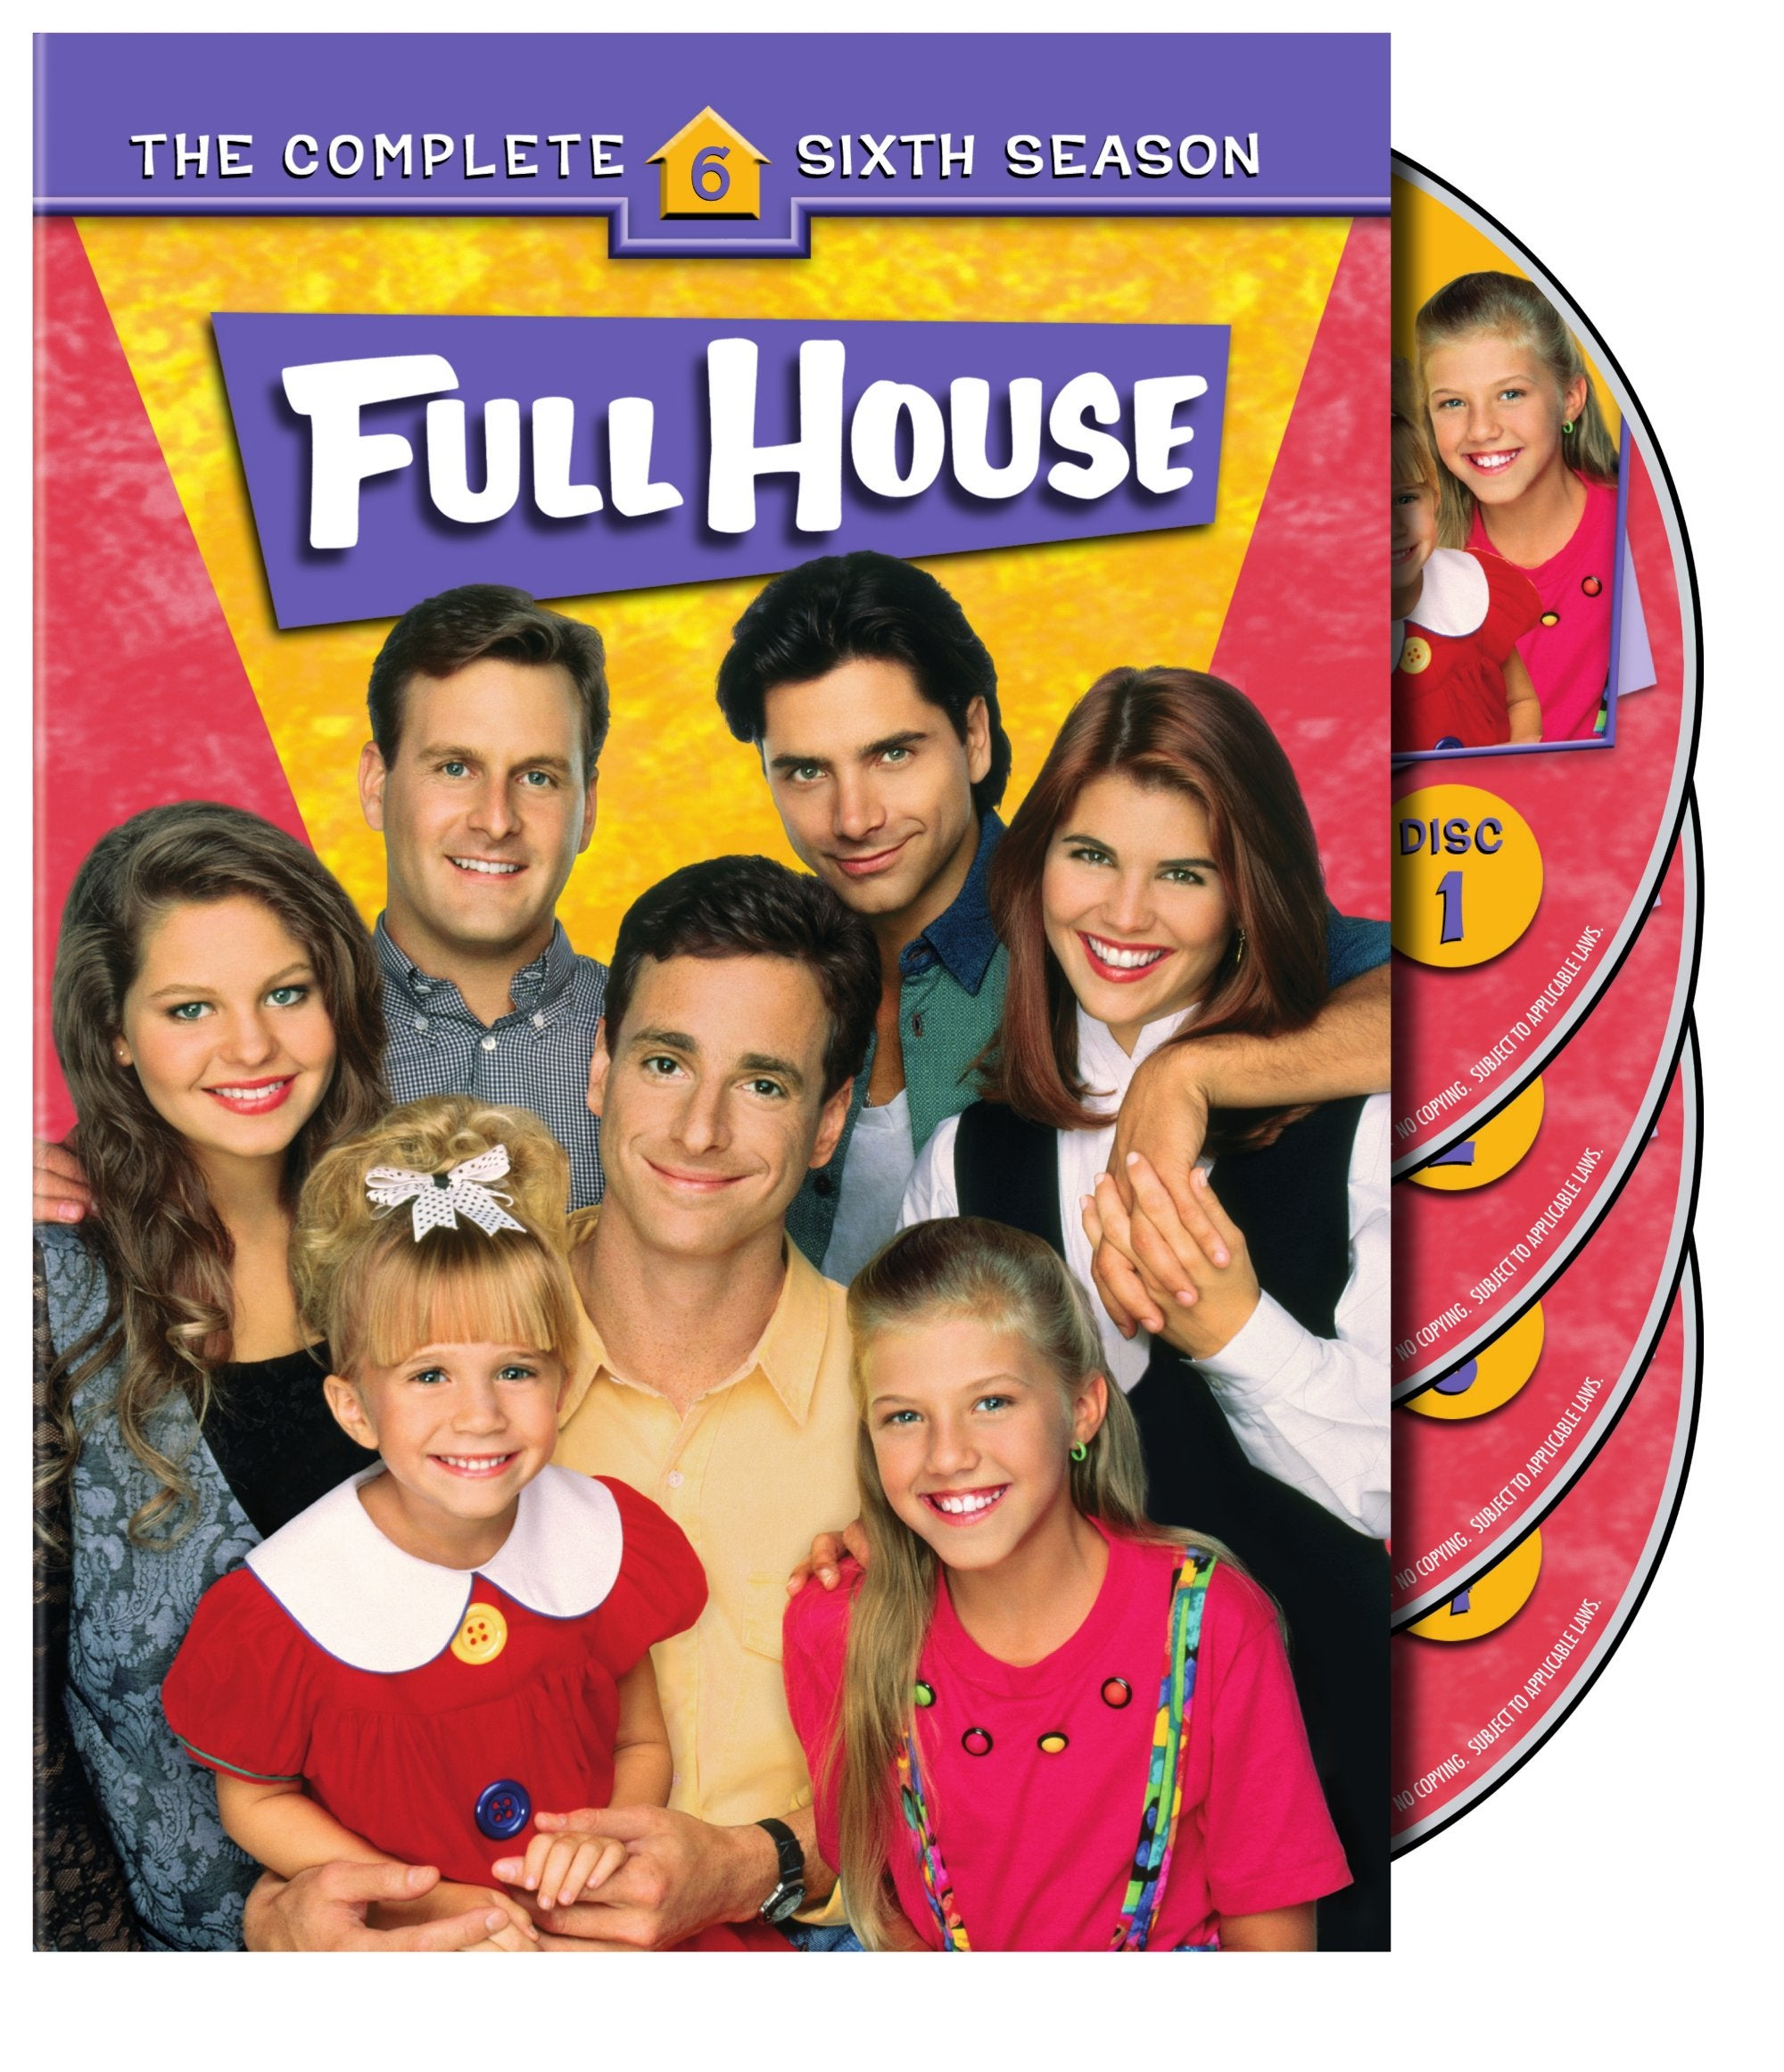 Full House: The Complete Sixth Season (DVD)